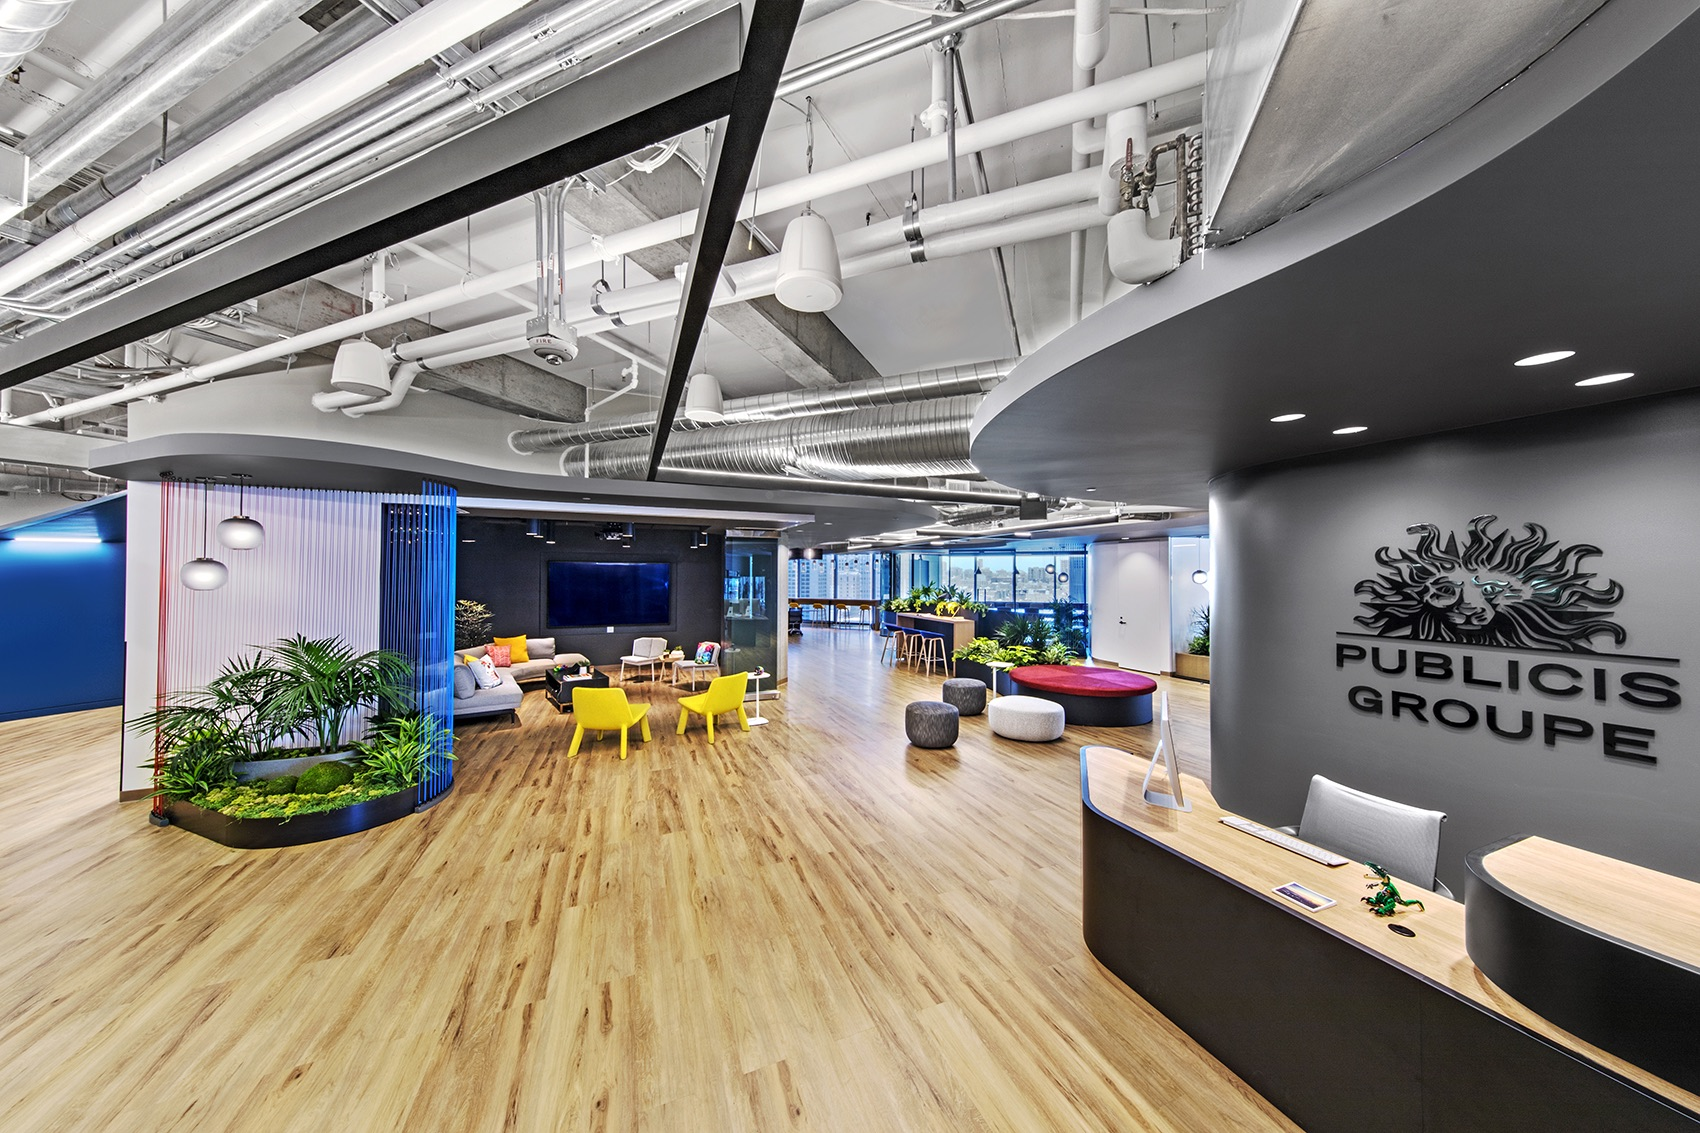 A Tour of Publicis Groupe's Modern San Francisco Office